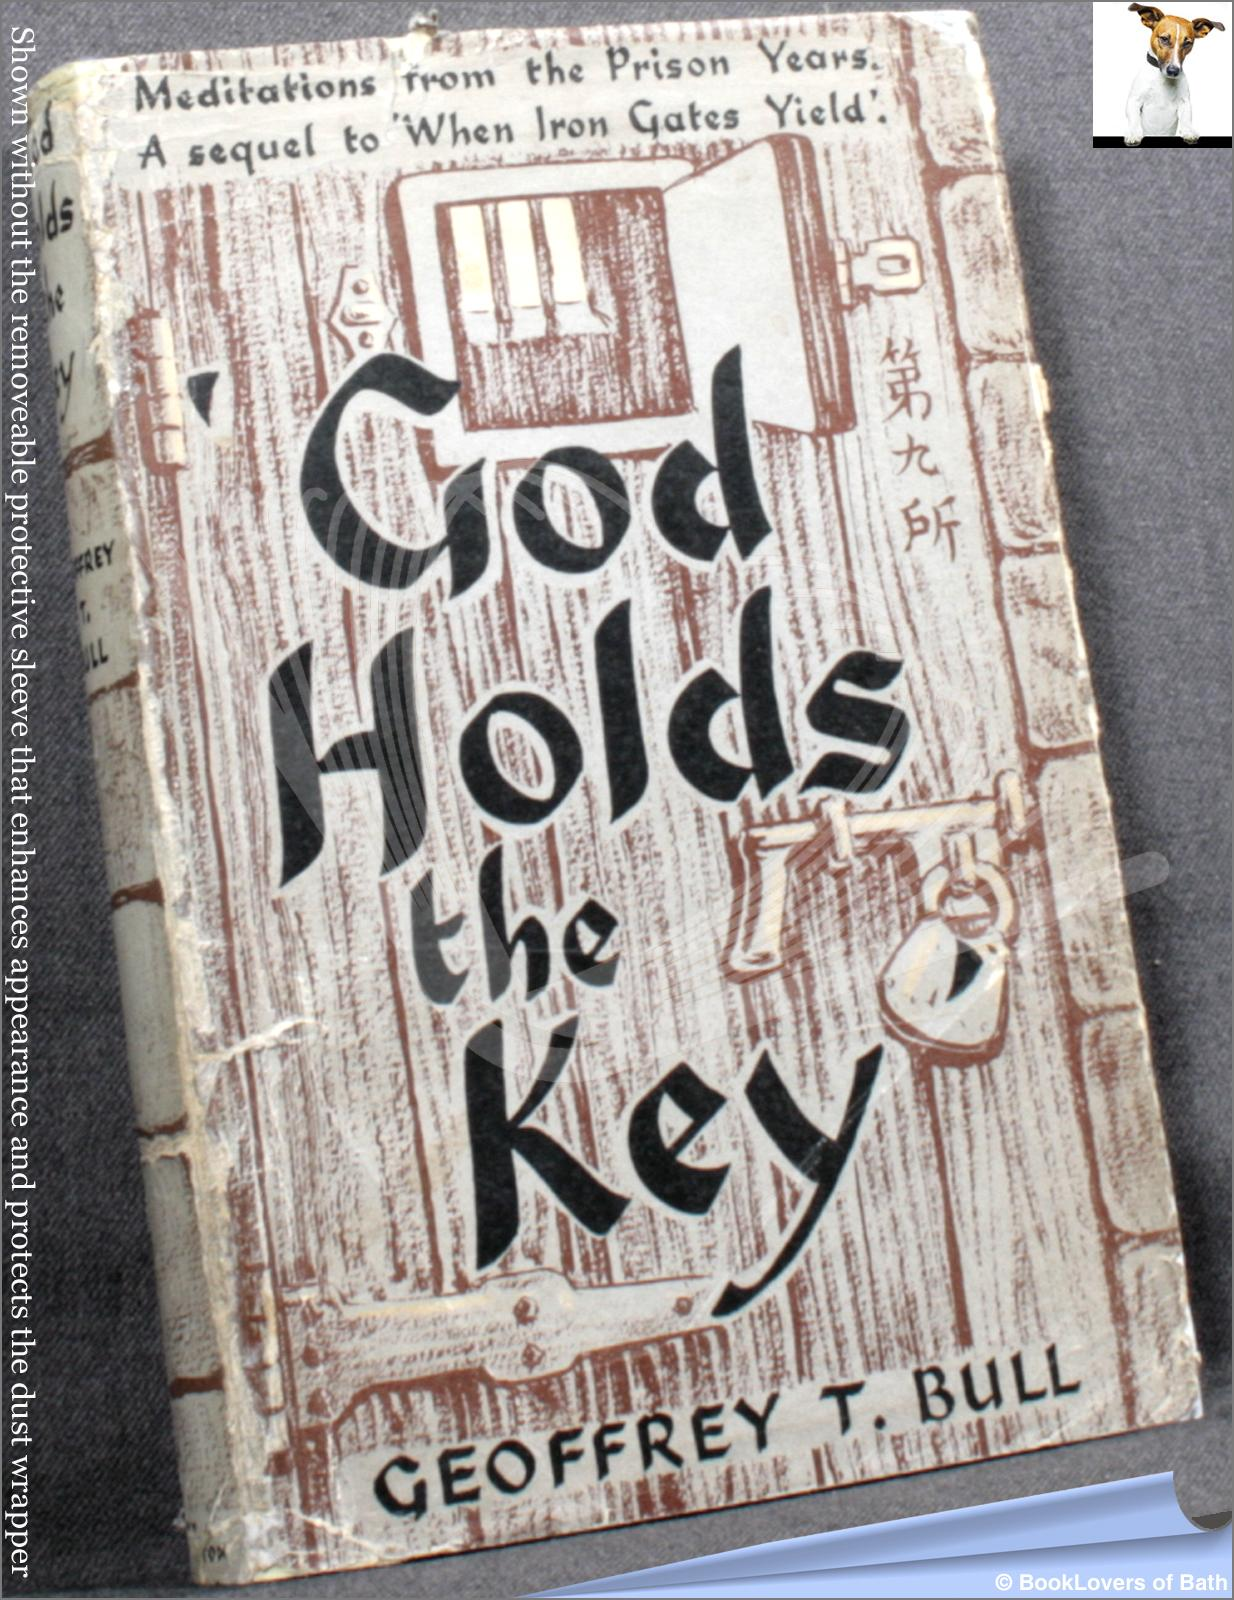 God Holds the Key - Geoffrey T. (Taylor) Bull